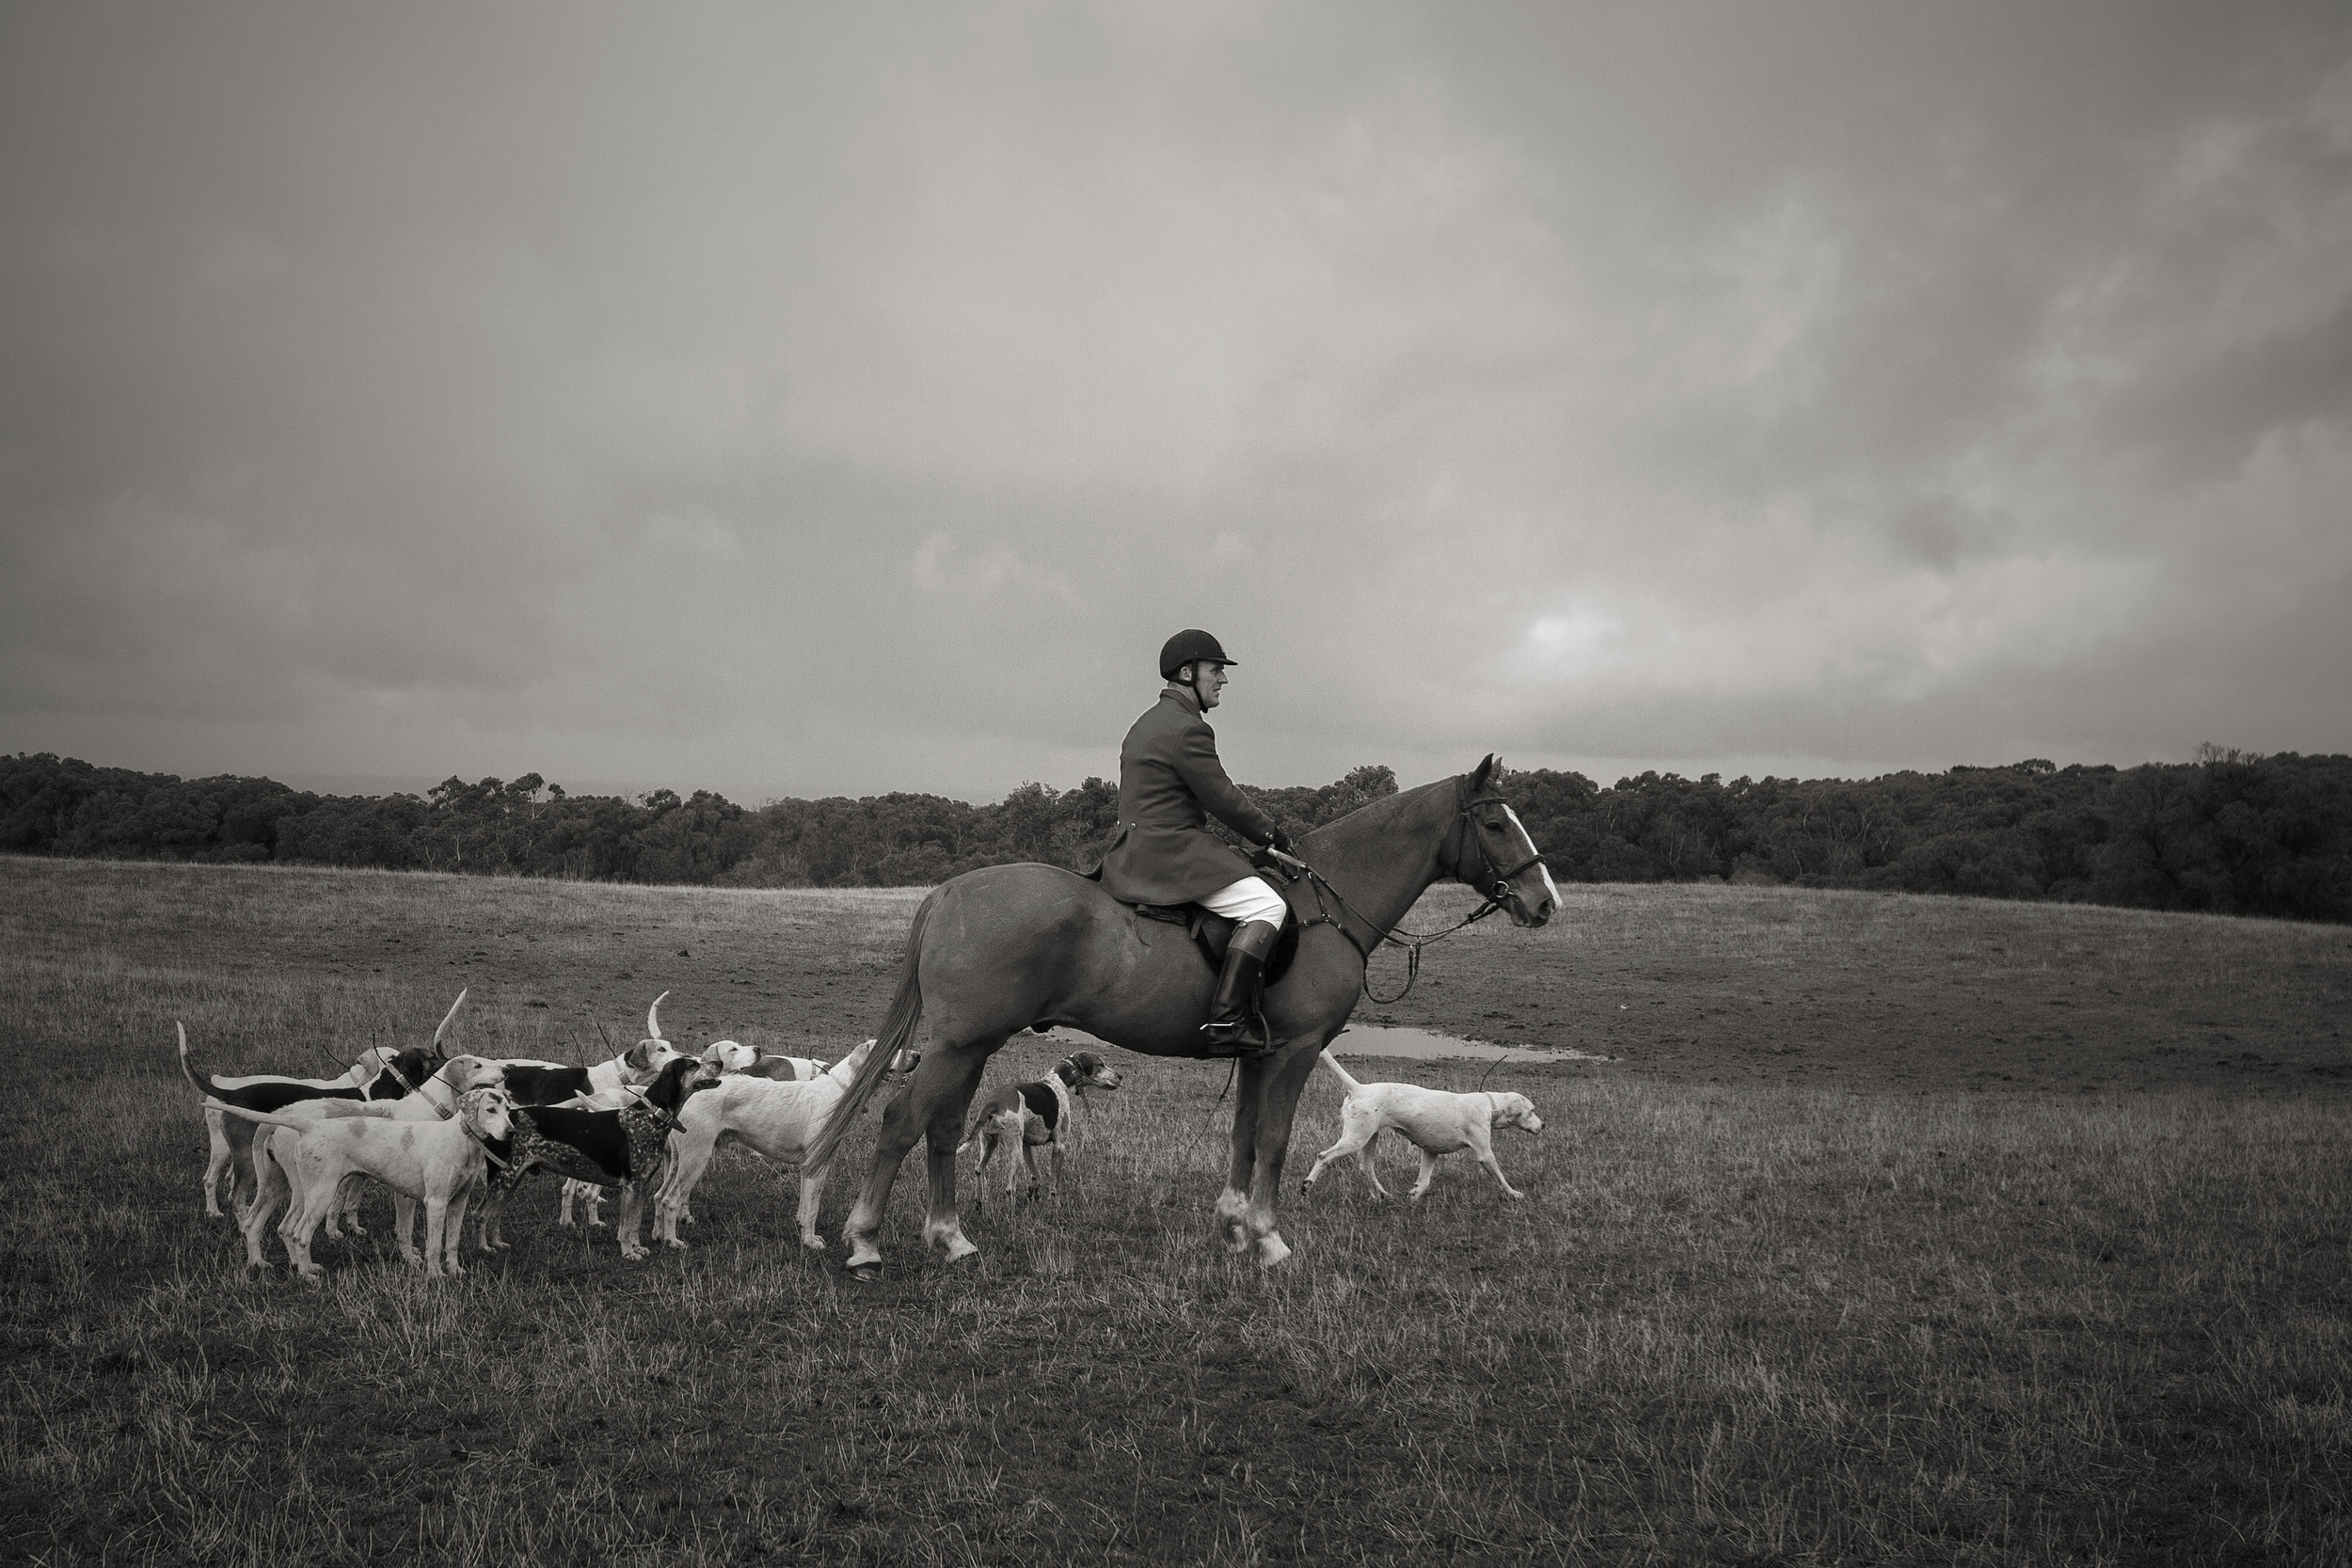 The Hunt Master and his Hounds, about to open the hunt.